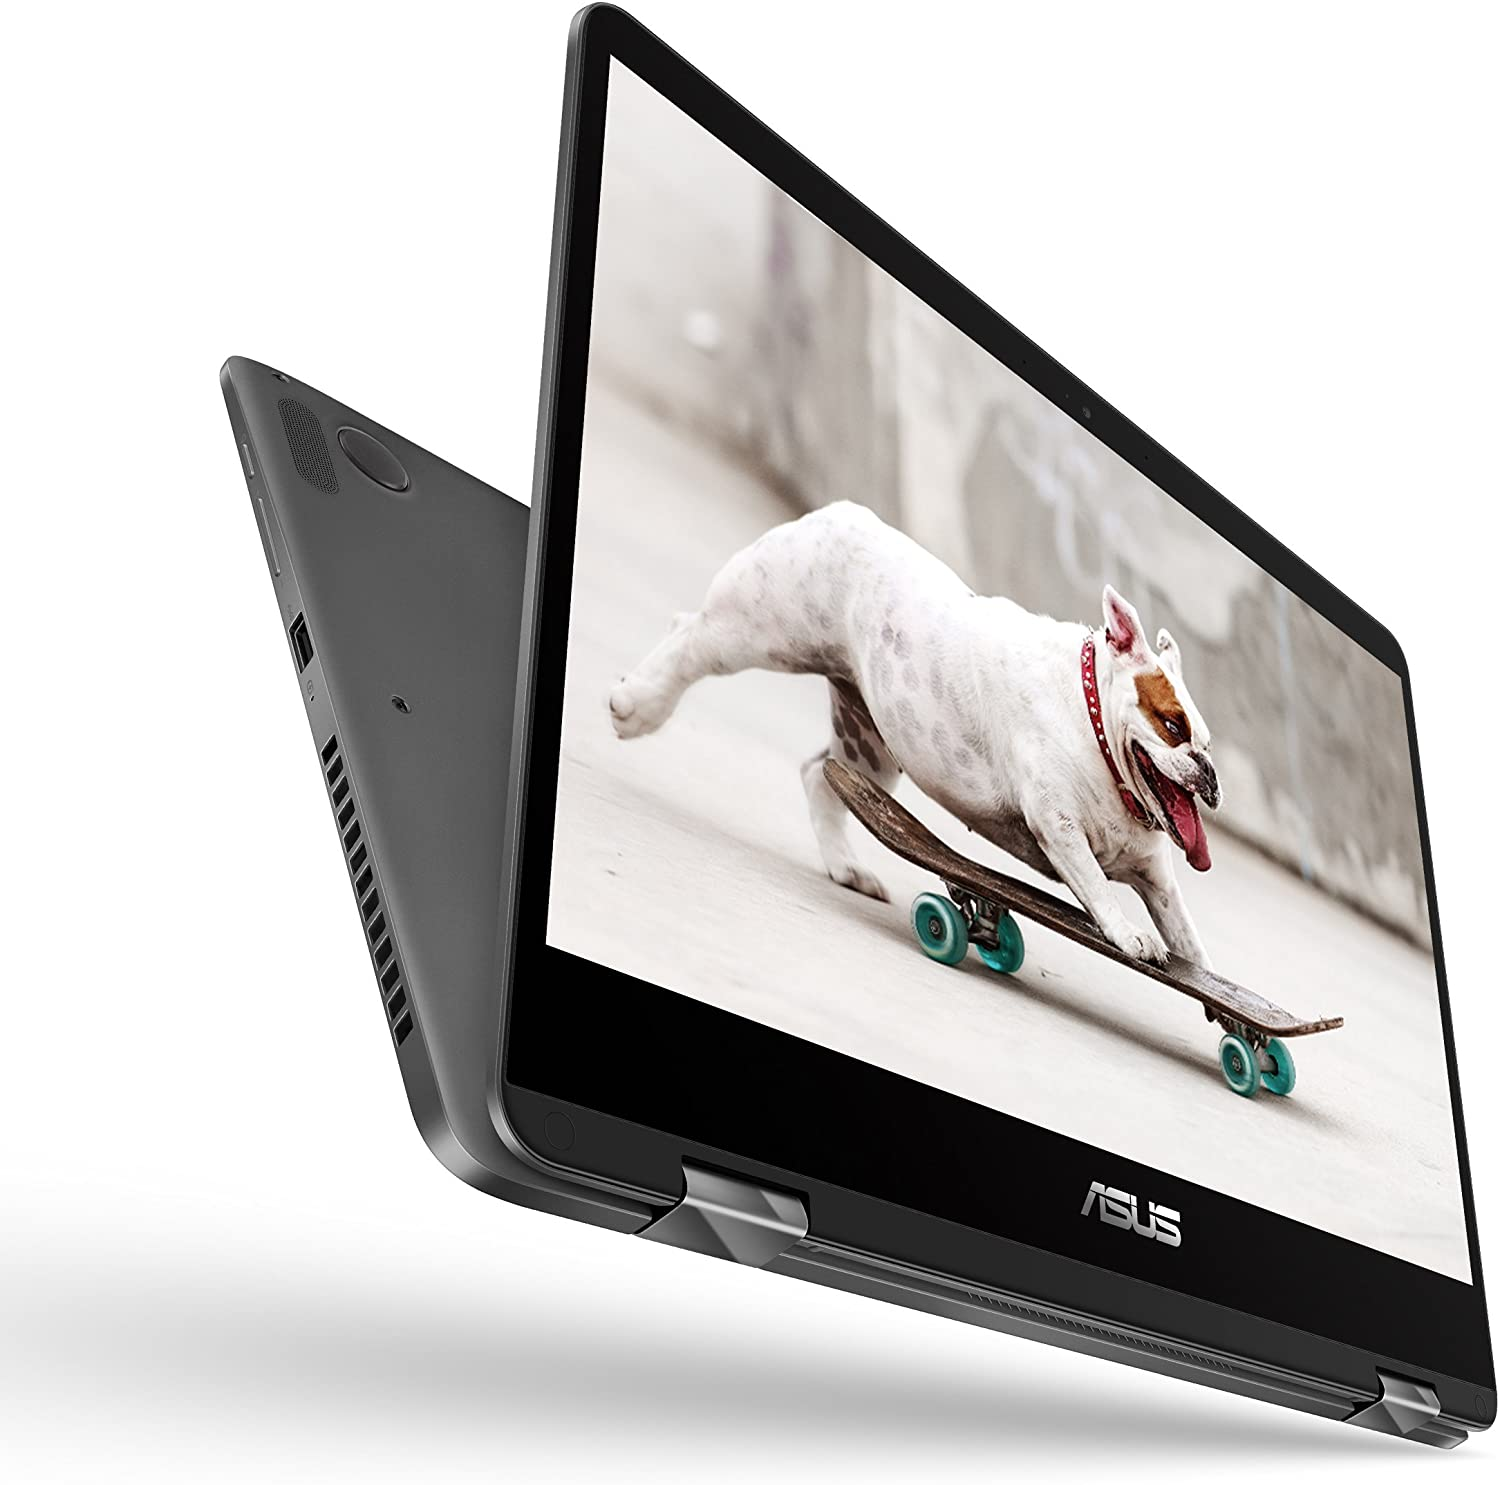 "ASUS ZenBook Flip 14 UX461UA-DS51T Ultra-Slim Convertible Laptop 14"" FHD wideview display 8th gen Intel Core i5 Processor, 8GB, 256GB SATA SSD, Windows 10, Backlit keyboard, Fingerprint, Stylus pen"